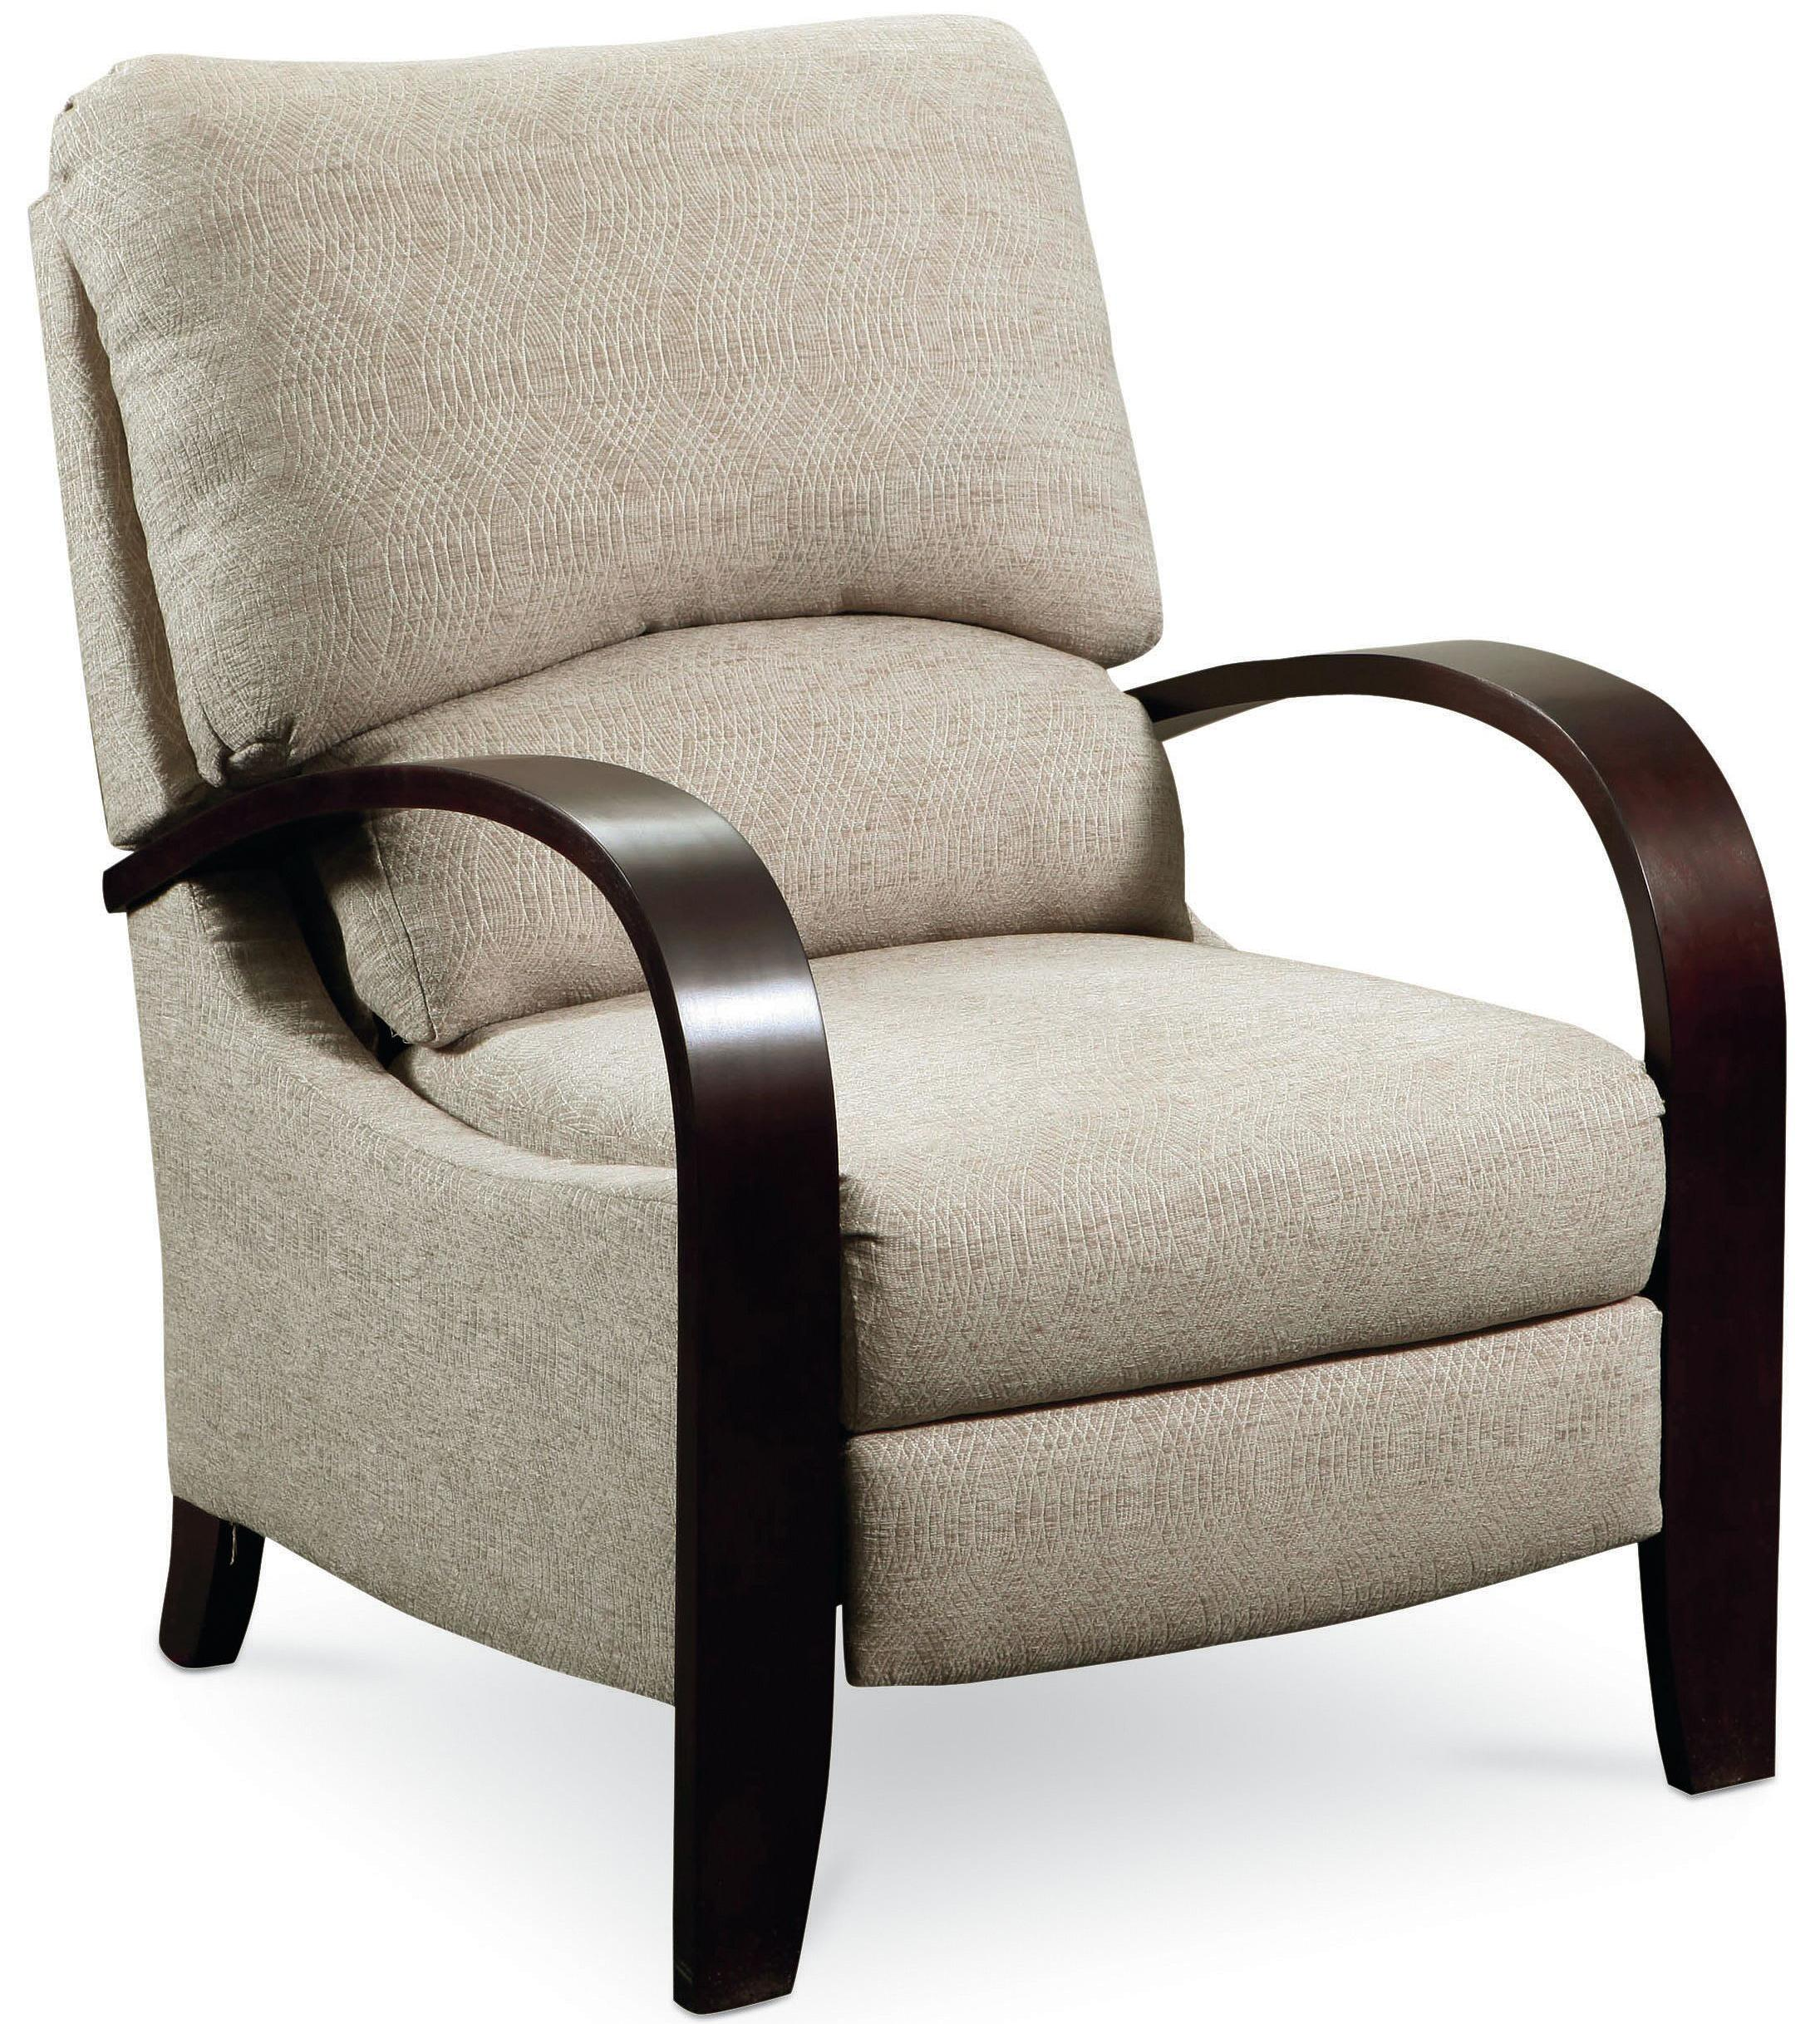 on stressless fabulous bent trisha new images by audrina loveseat yearwood recliner furniture luxury pinterest arm of home size power best full reclining